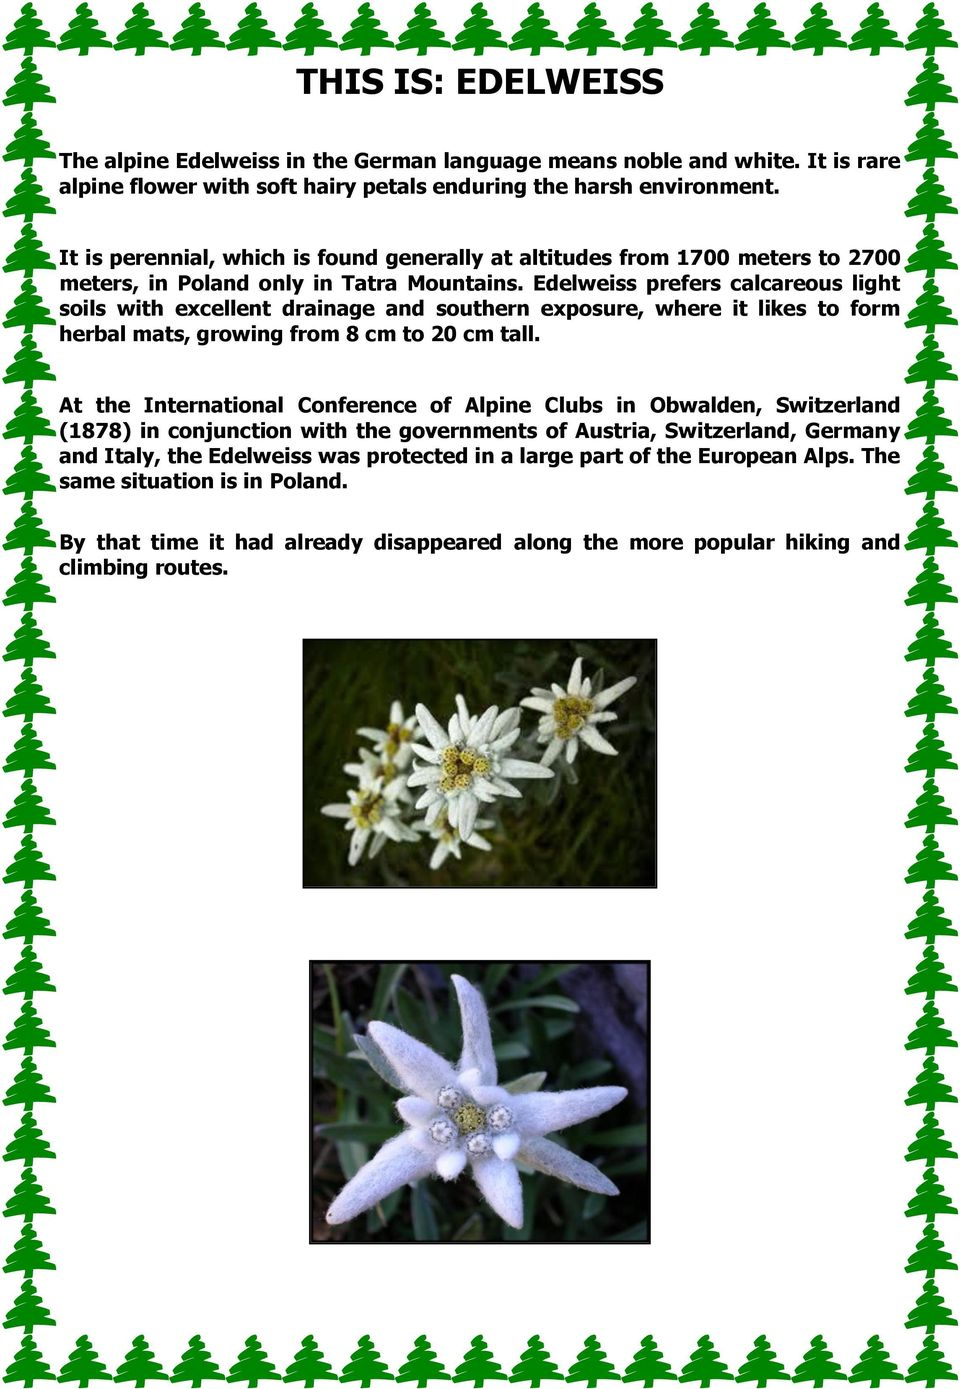 Edelweiss prefers calcareous light soils with excellent drainage and southern exposure, where it likes to form herbal mats, growing from 8 cm to 20 cm tall.